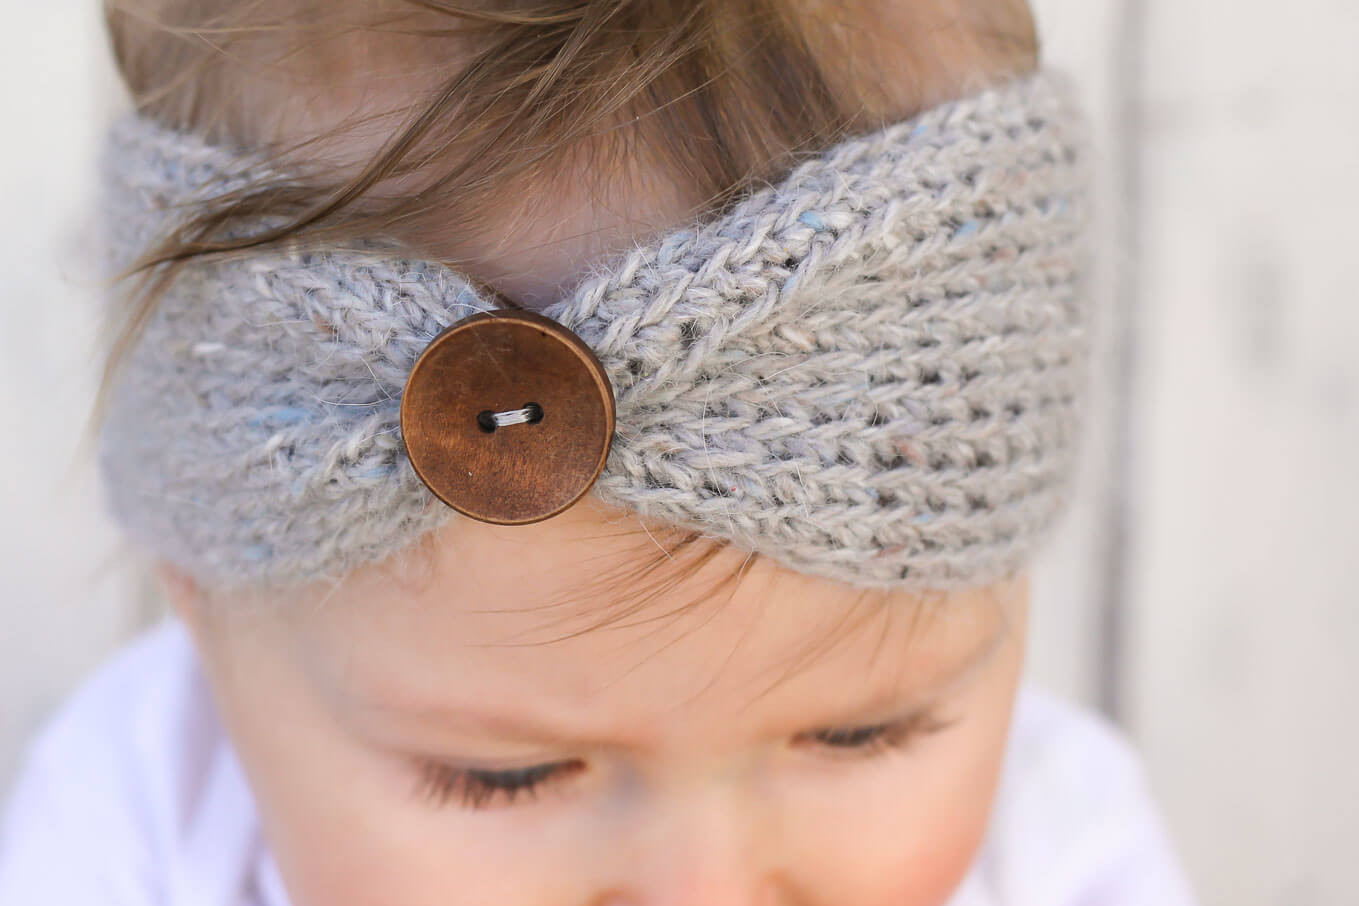 Baby Girl Crochet Patterns Best Of Free Crochet Headband Pattern Baby Adult Sizes Of Perfect 45 Models Baby Girl Crochet Patterns